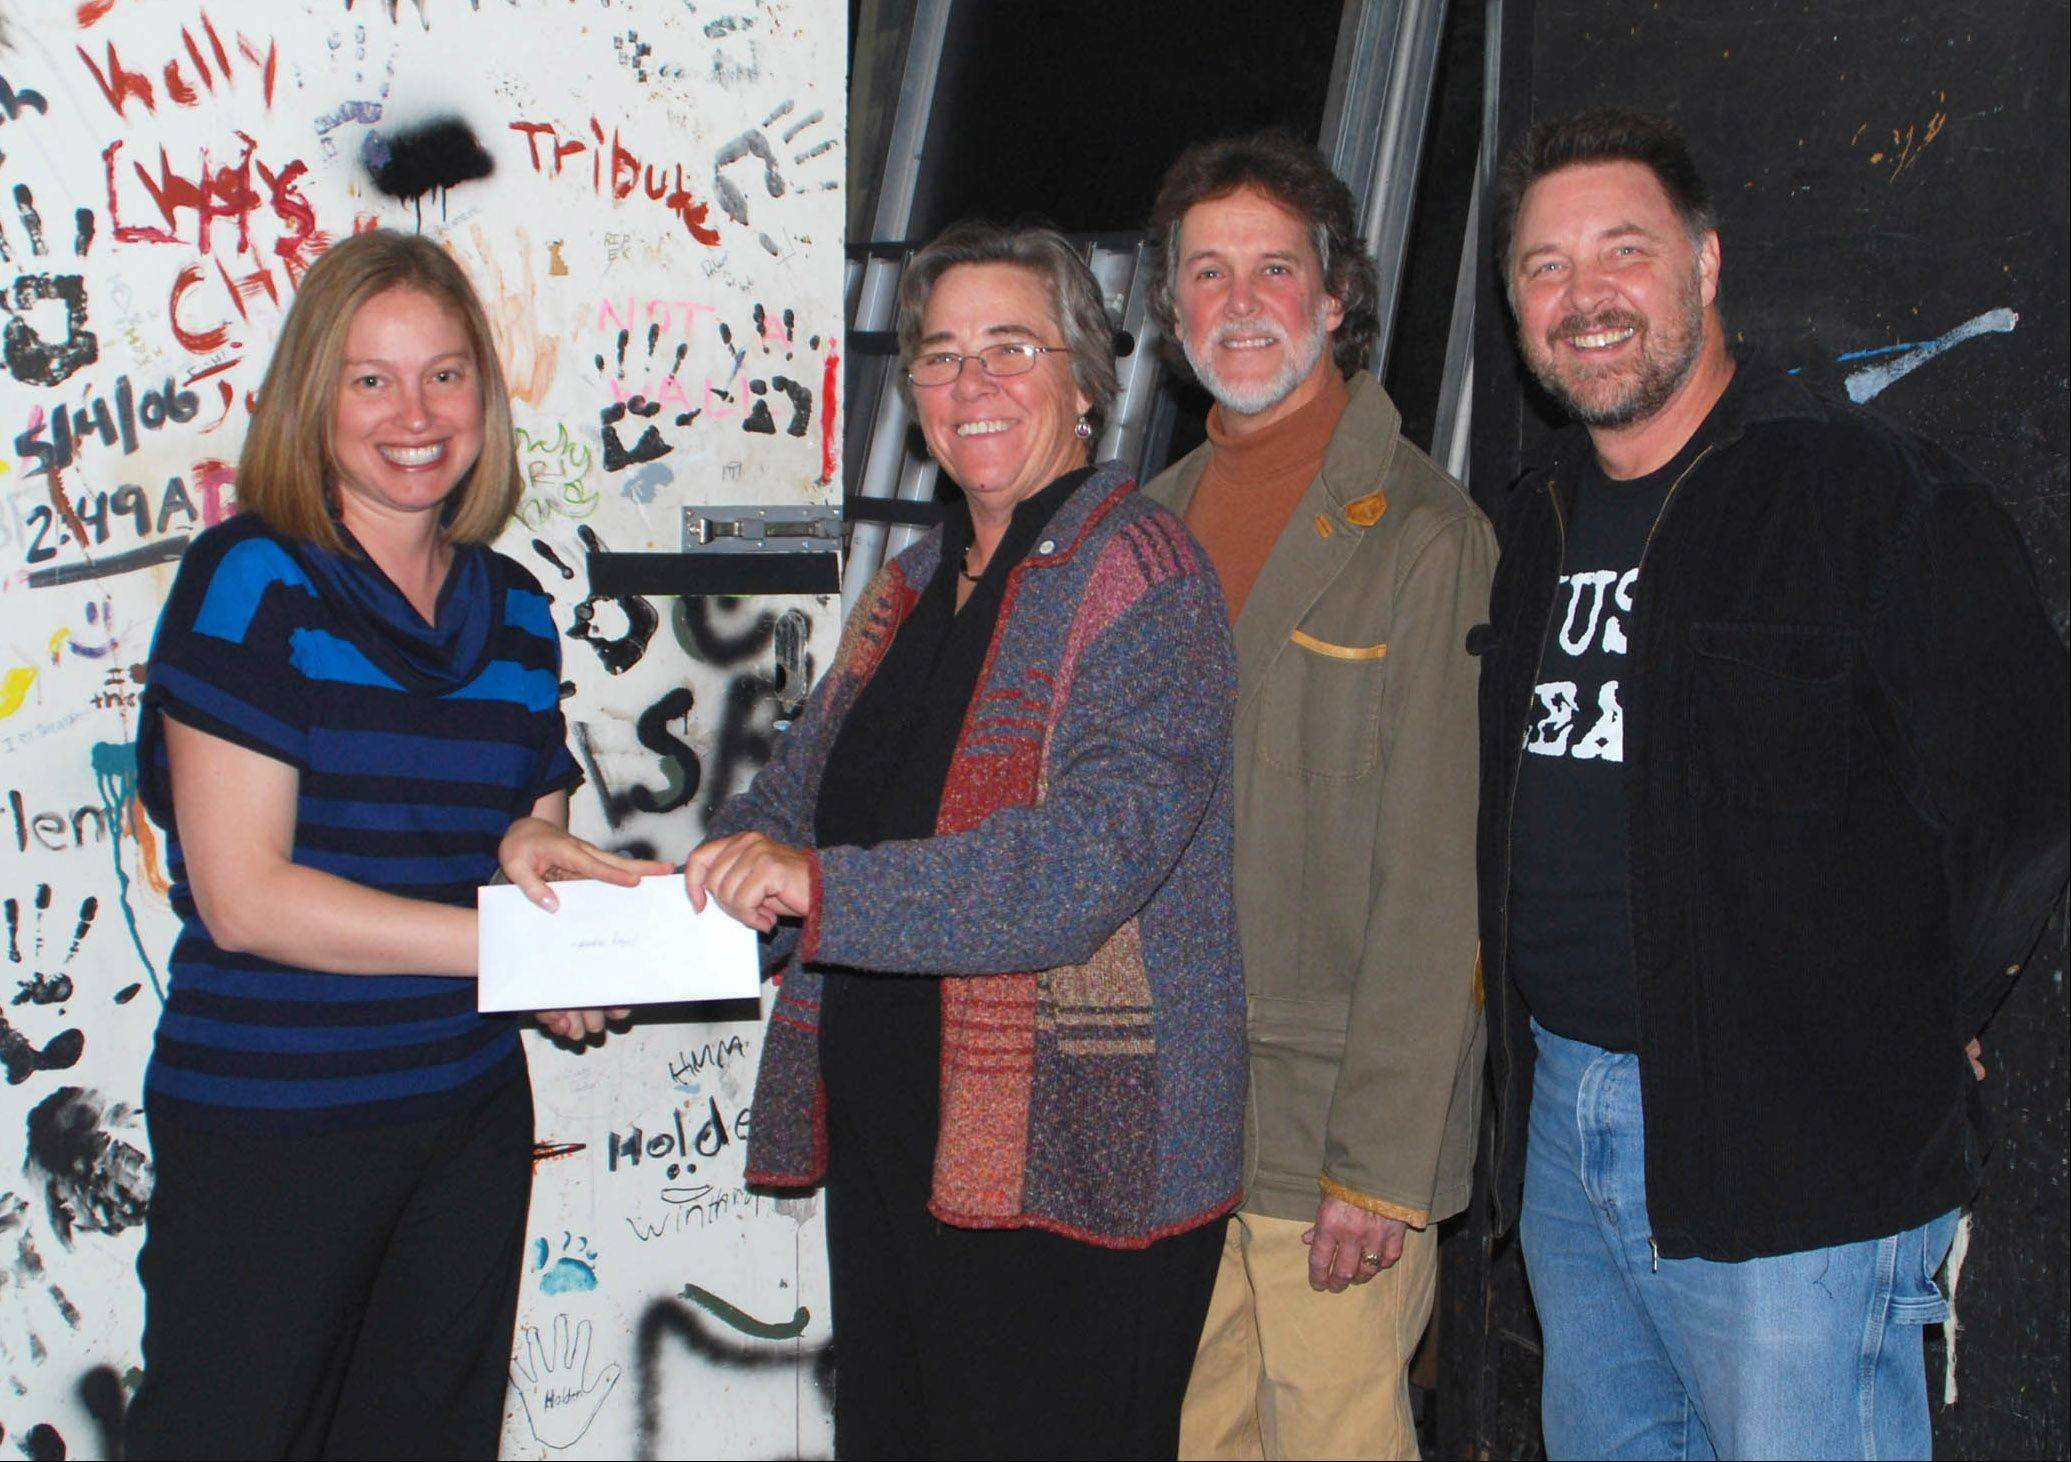 Mundelein High School�s theater program has received a $500 grant from a local theater group.